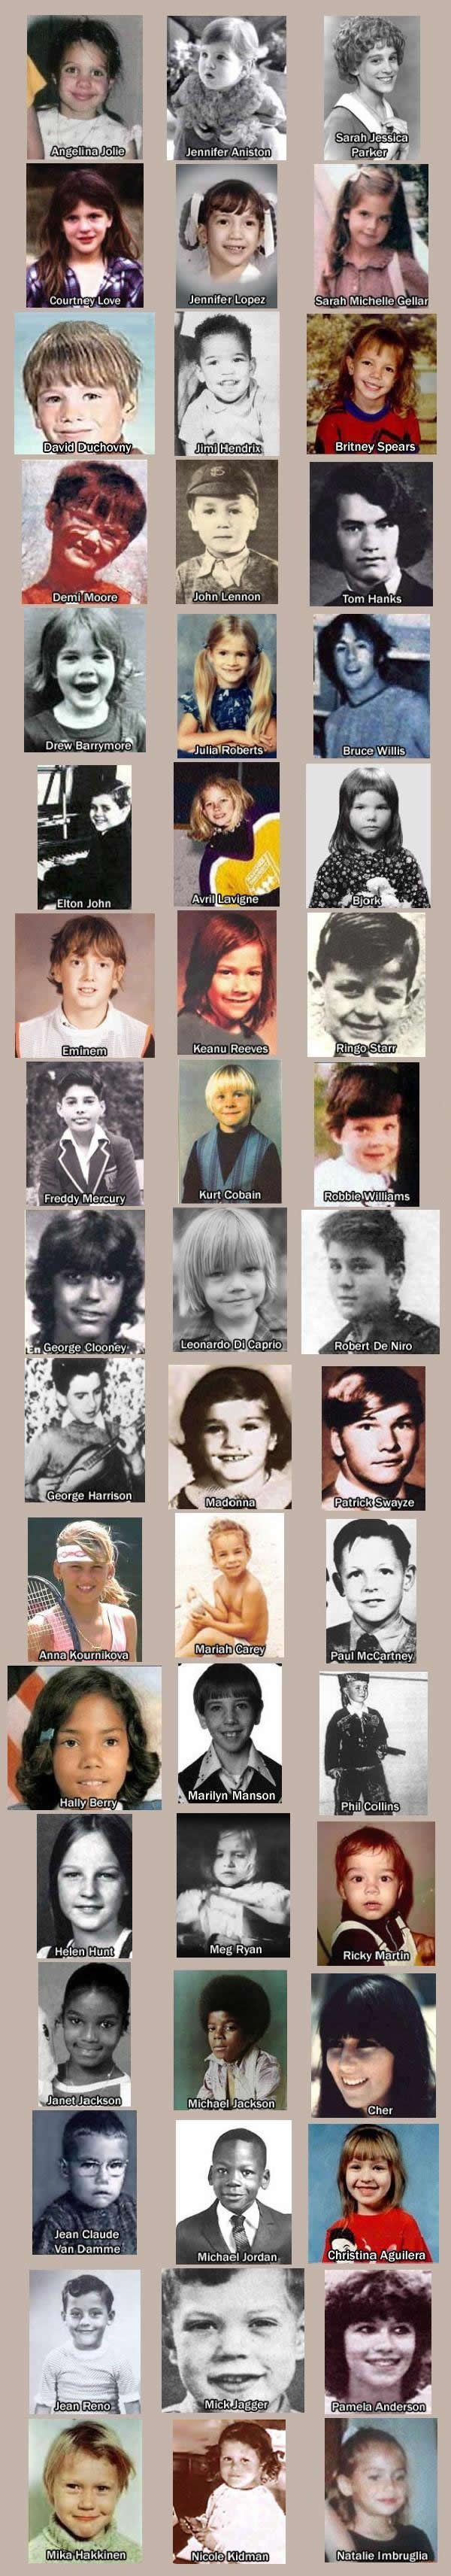 Stars as kids! (But I'm pretty sure the 1st pic is Jeanine Gerafelo not Angelina Jolie)